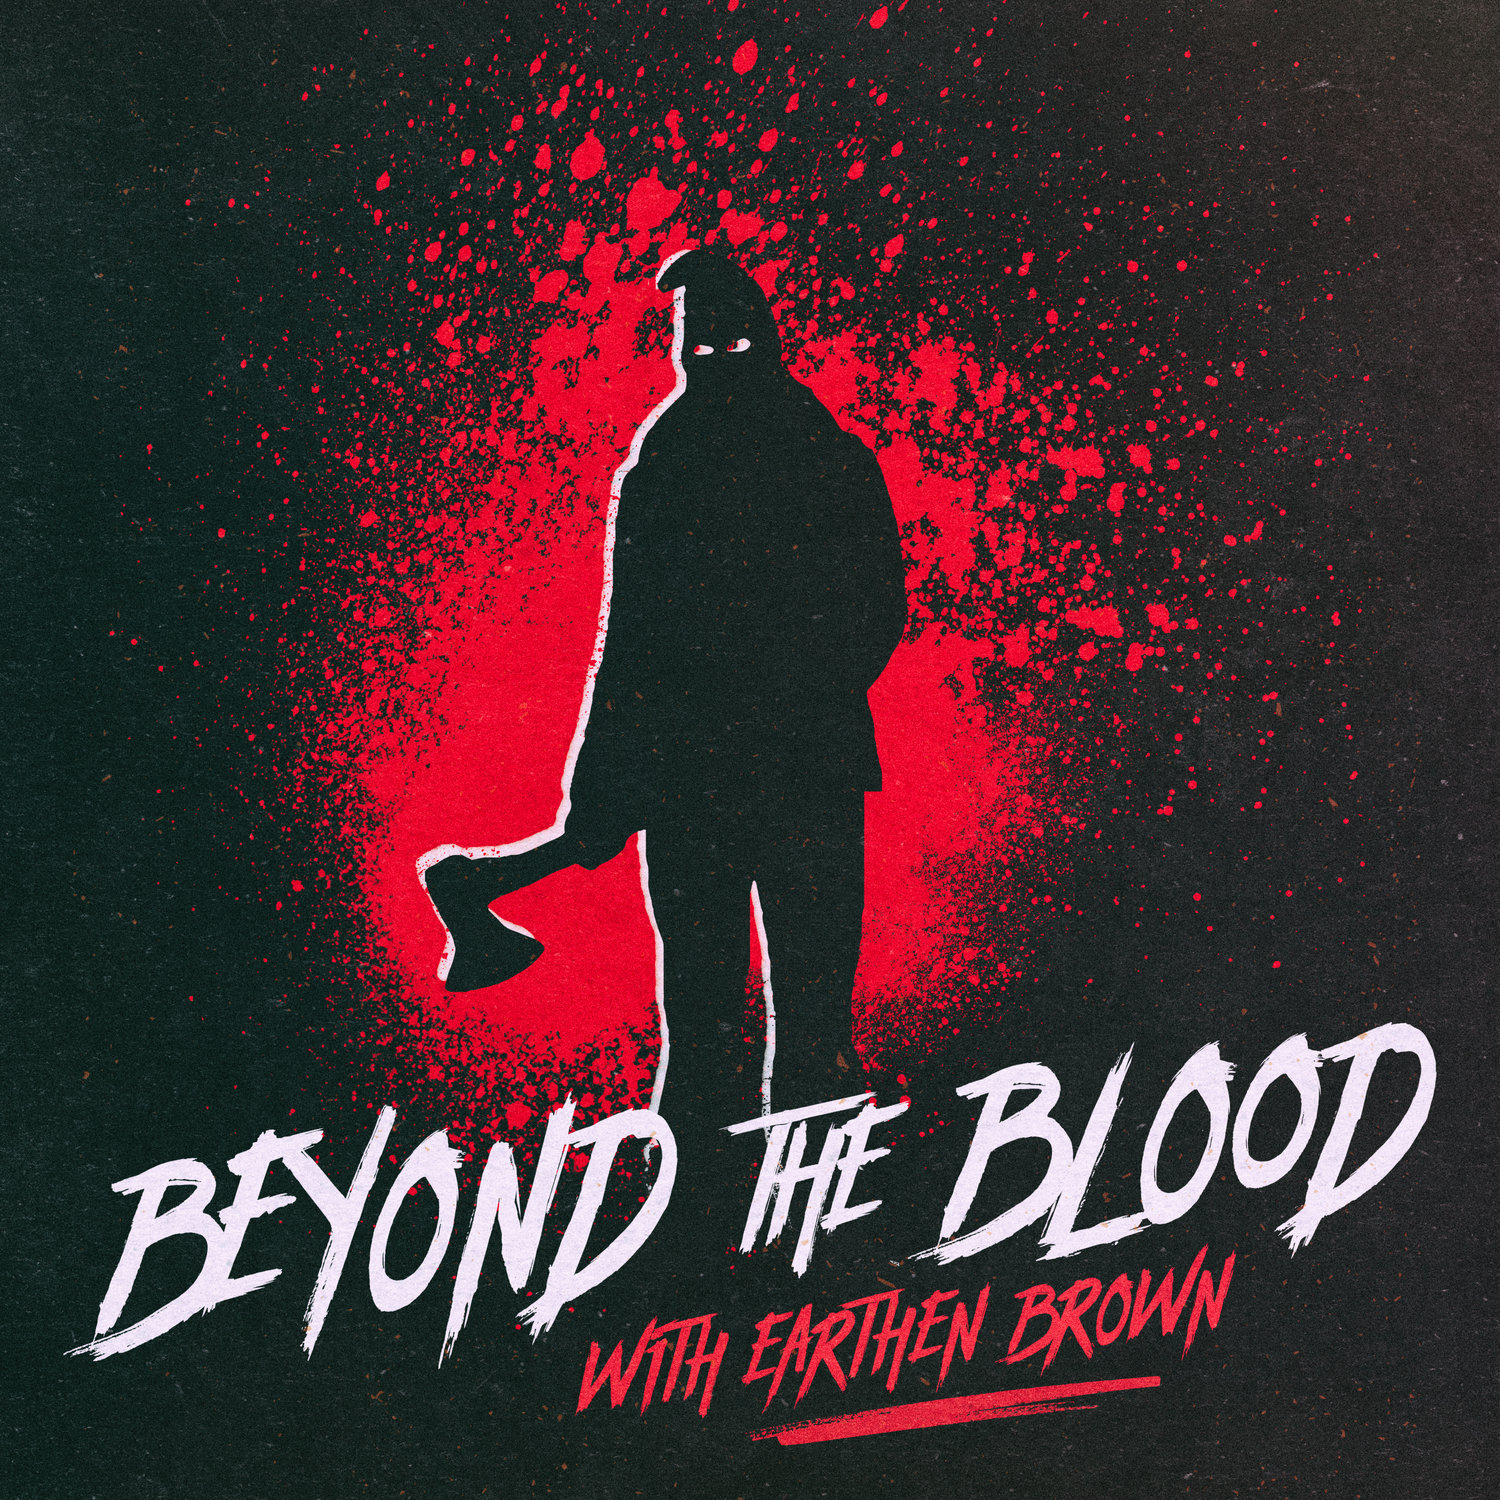 Beyond the Blood